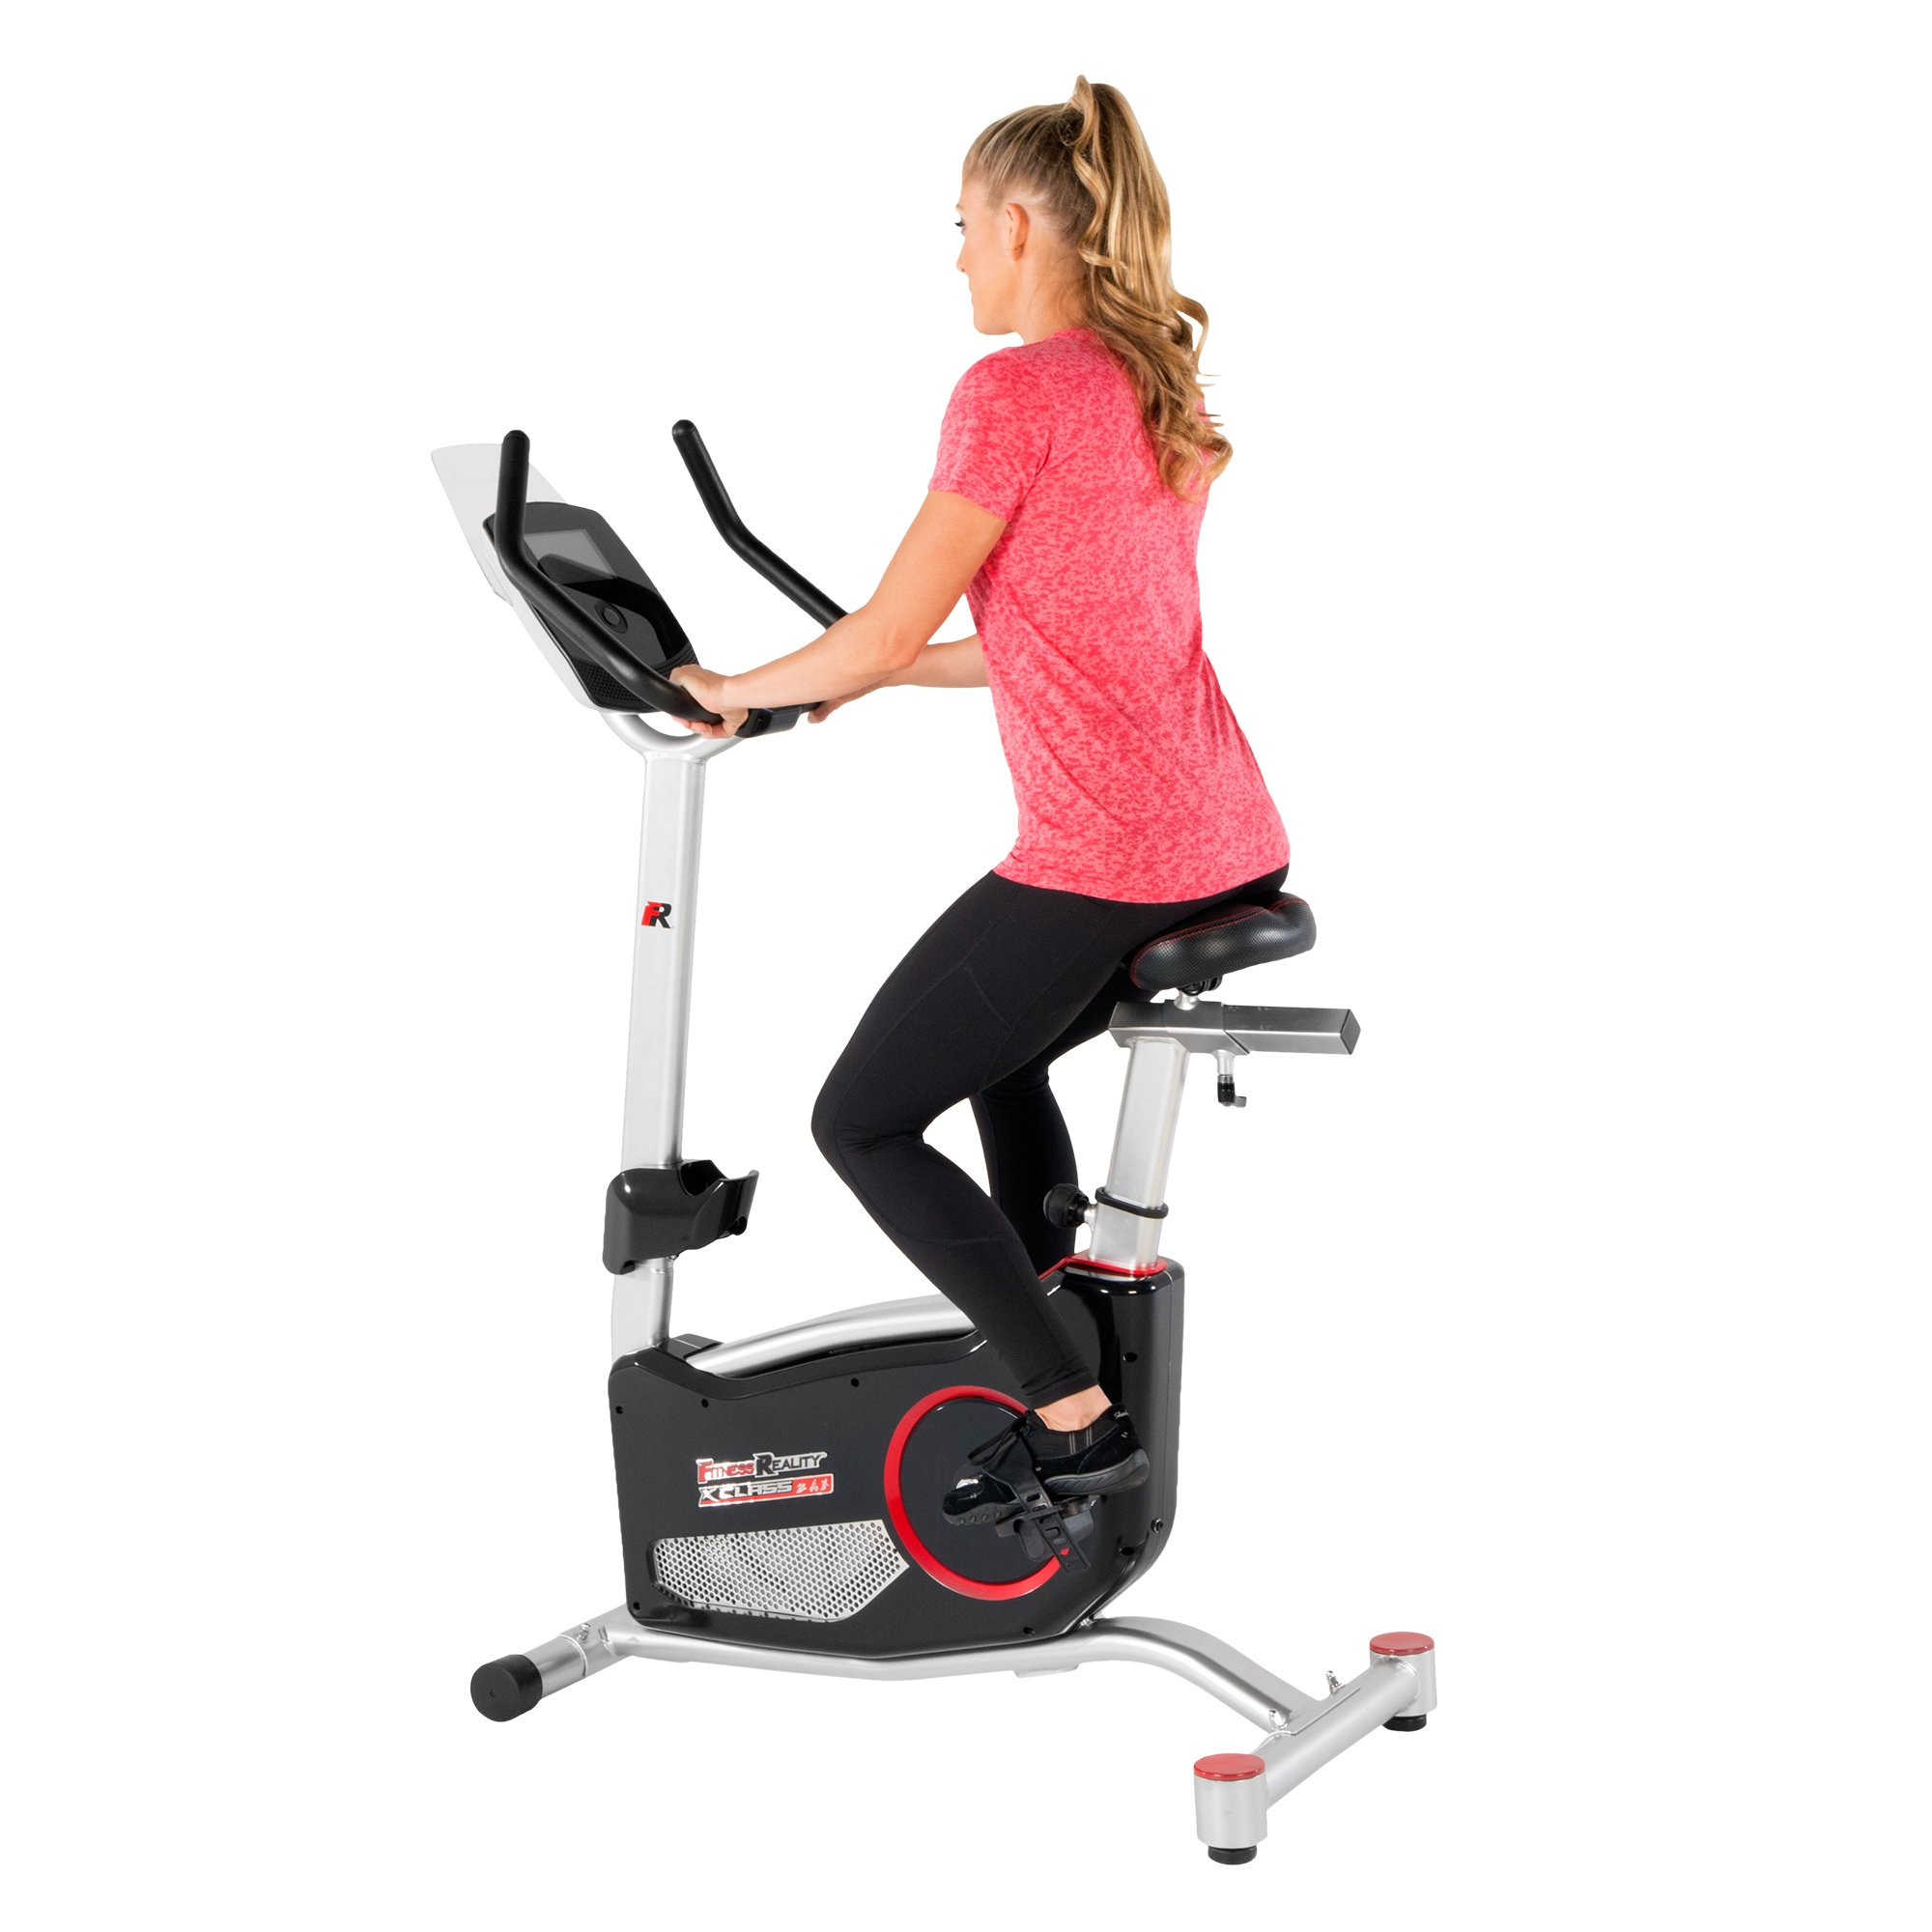 Fitness Reality X Class 310 Bluetooth Smart Technology Upright Exercise Bike with 20 Computer Workout Programs by Fitness Reality